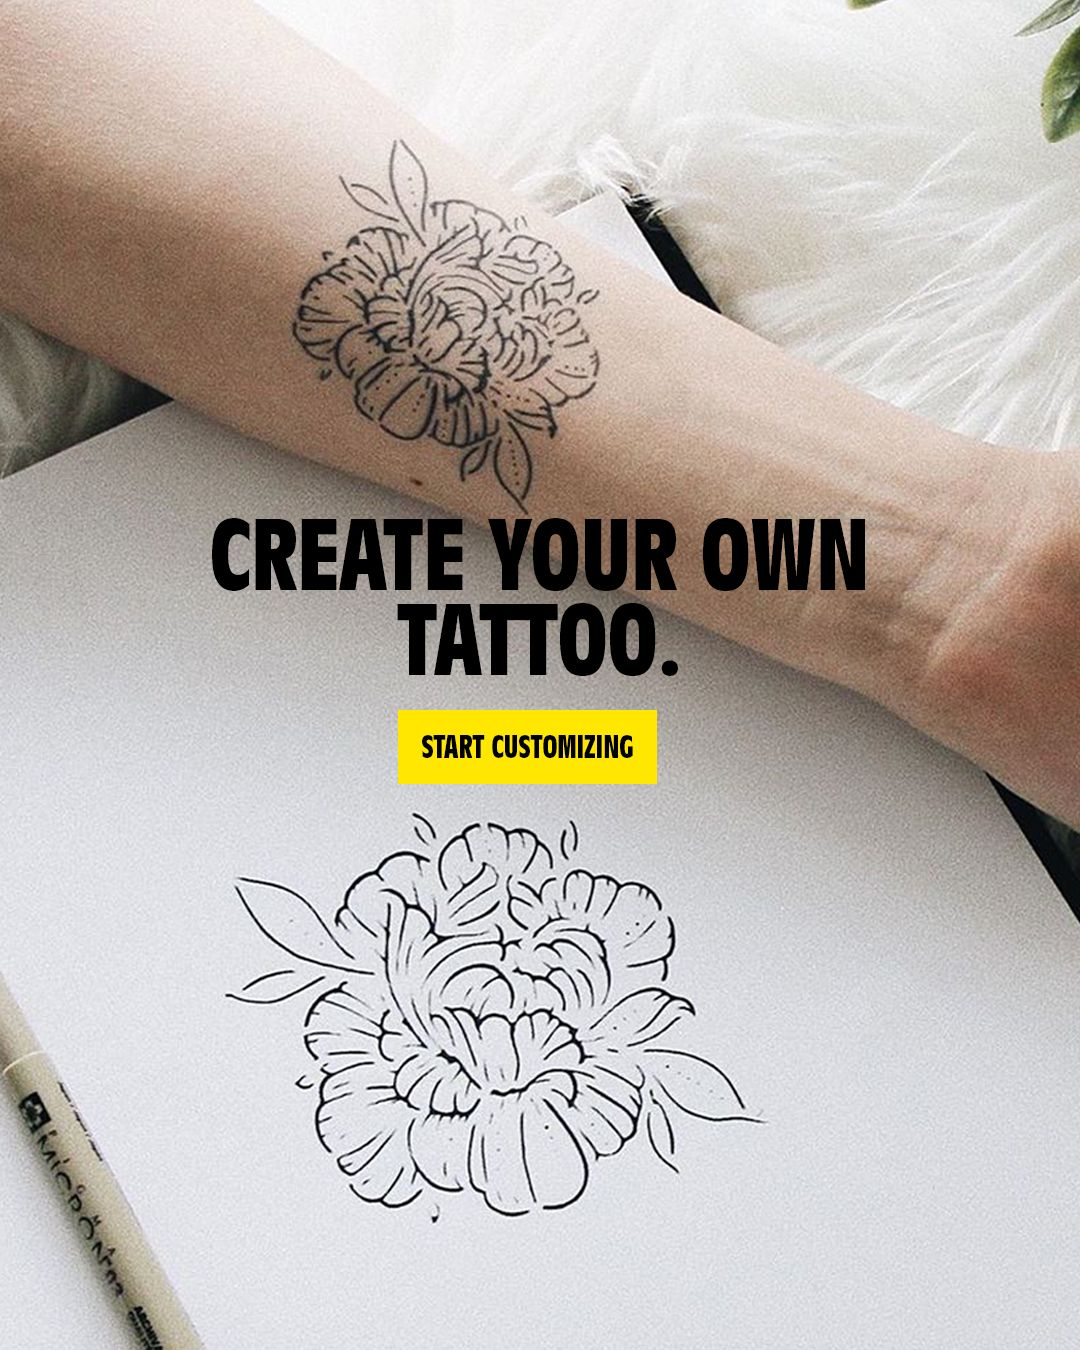 Inkbox Offers Tattoos That Last 1 2 Weeks And Look Real Design